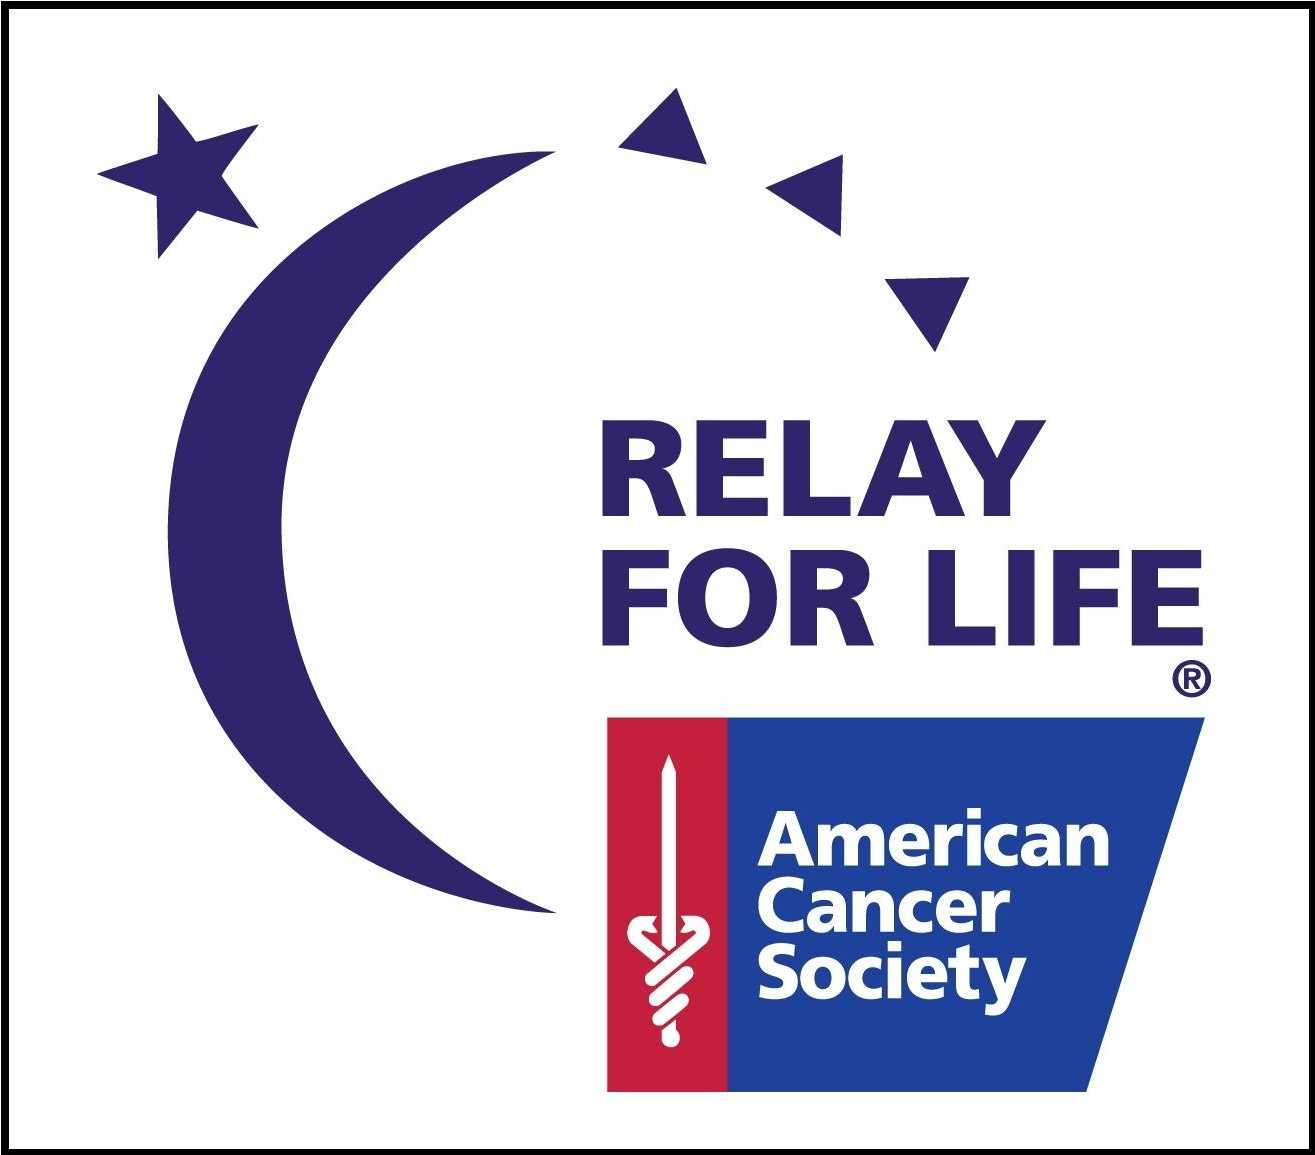 Performance Painting Gives $200/Project to Relay For Life